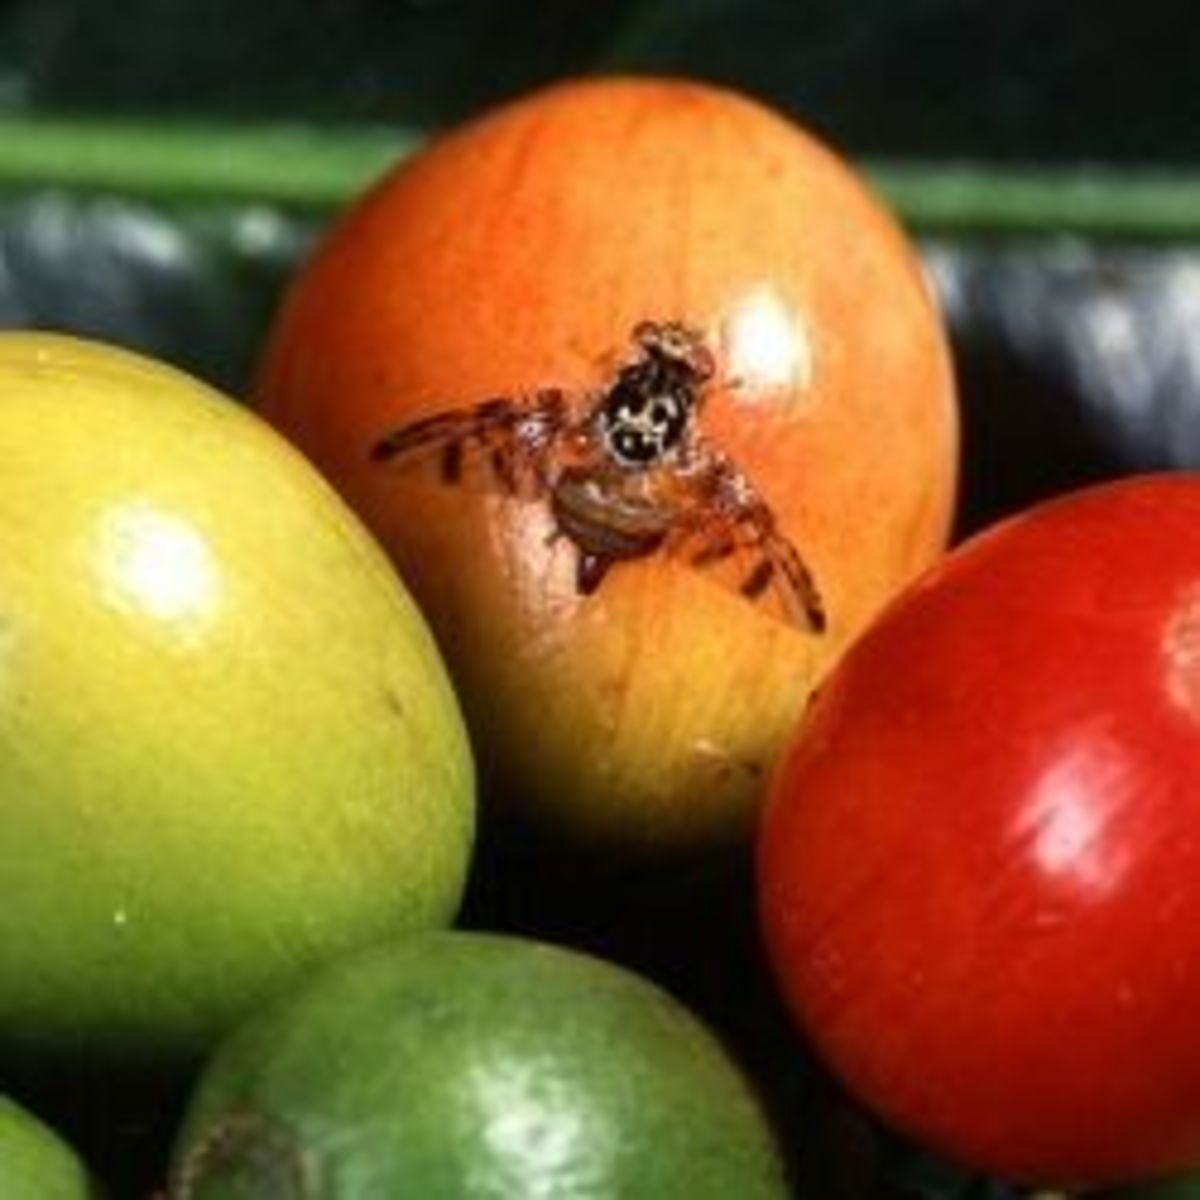 how to get rid of fruit flies permanently